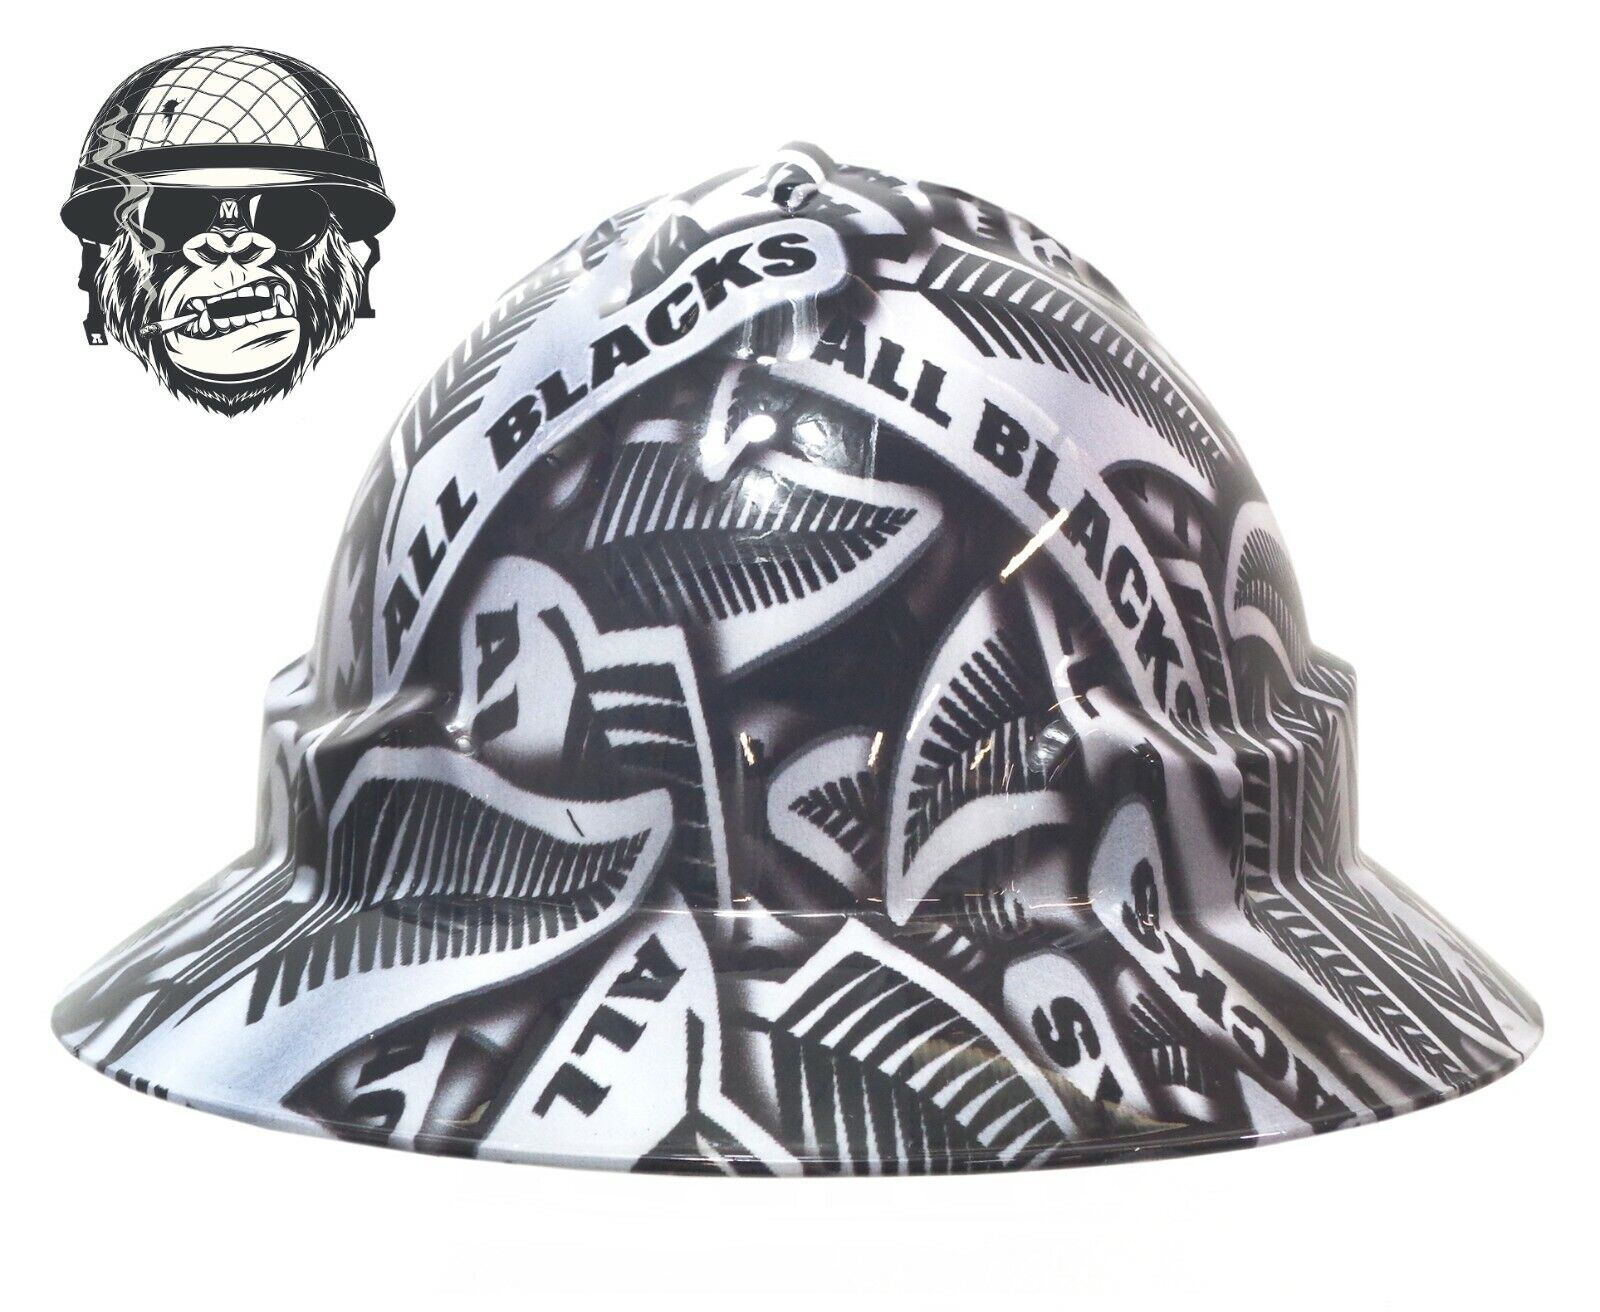 Custom Hydrographic Wide Brim Safety Hard Hat ALL BLACKS WIDE